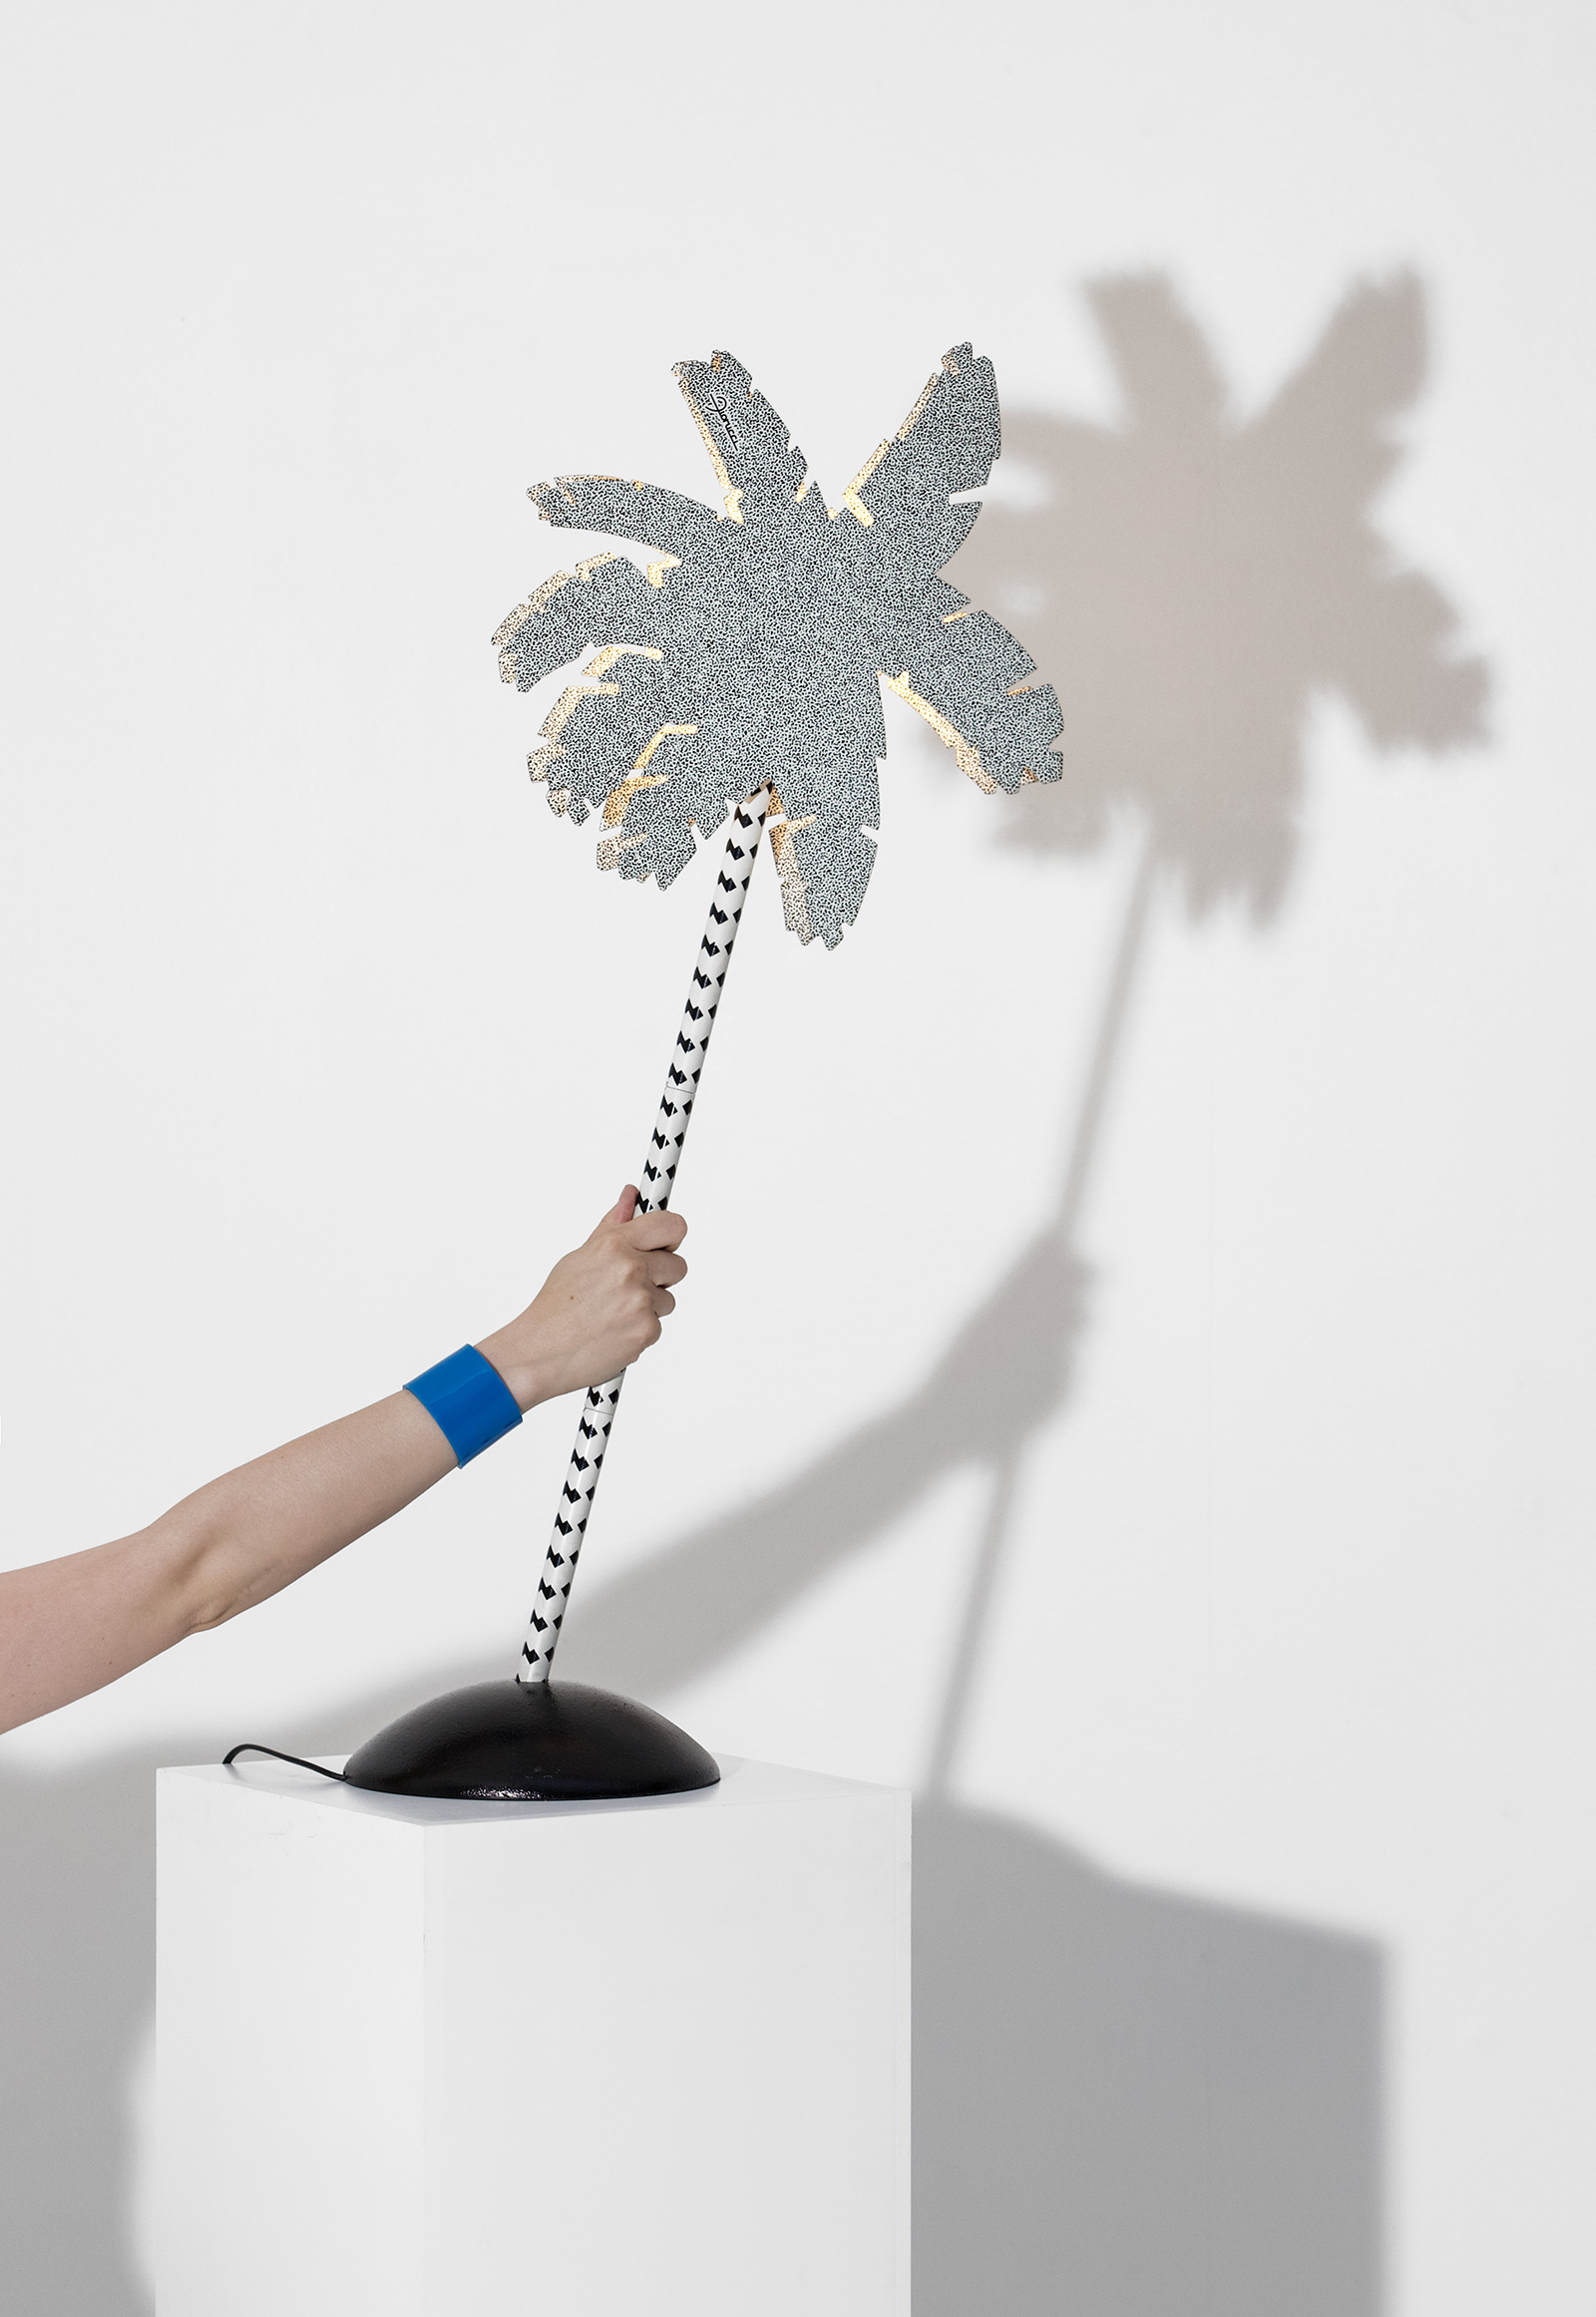 Fiorucci Palm Tree Table Lampimage 12